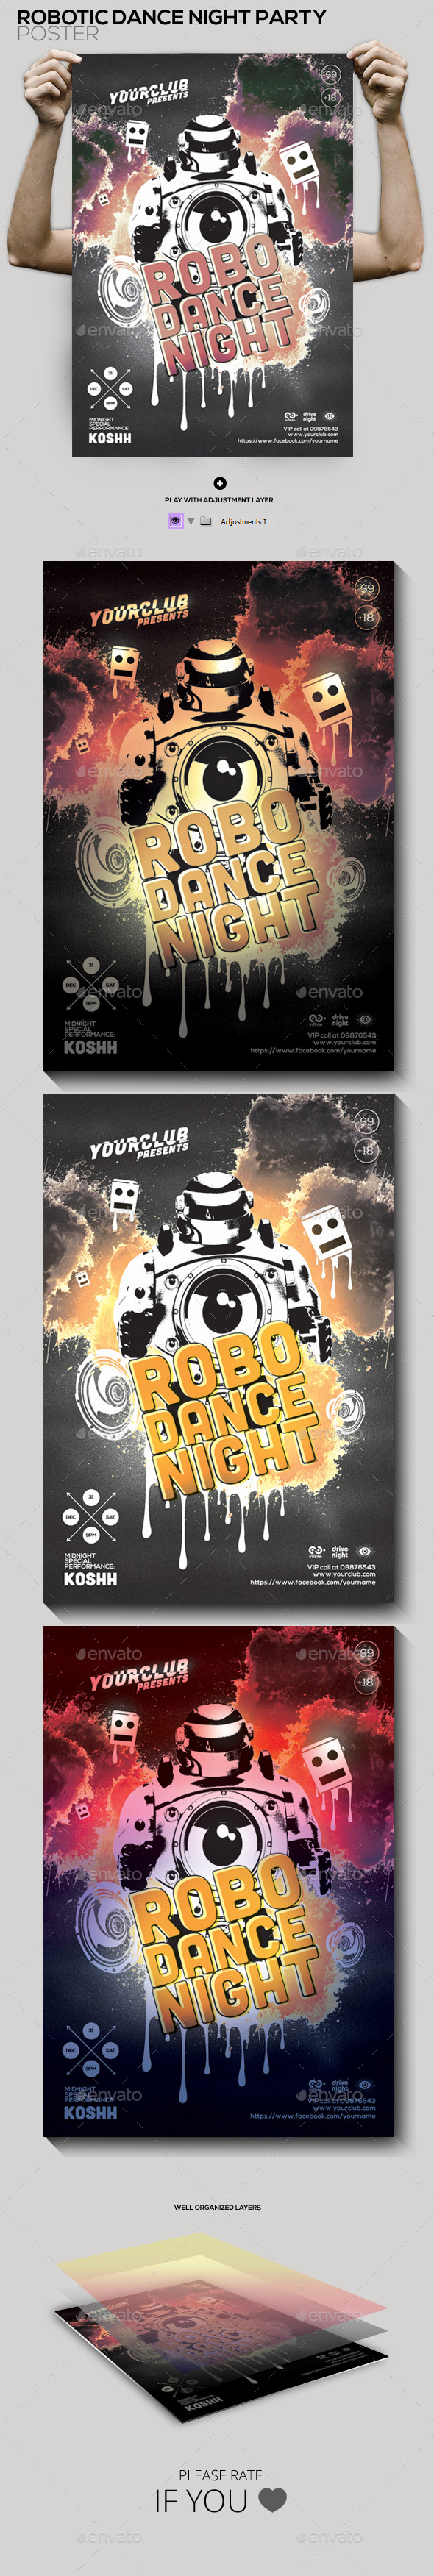 Robotic Dance Night Party Flyer/Poster - Clubs & Parties Events